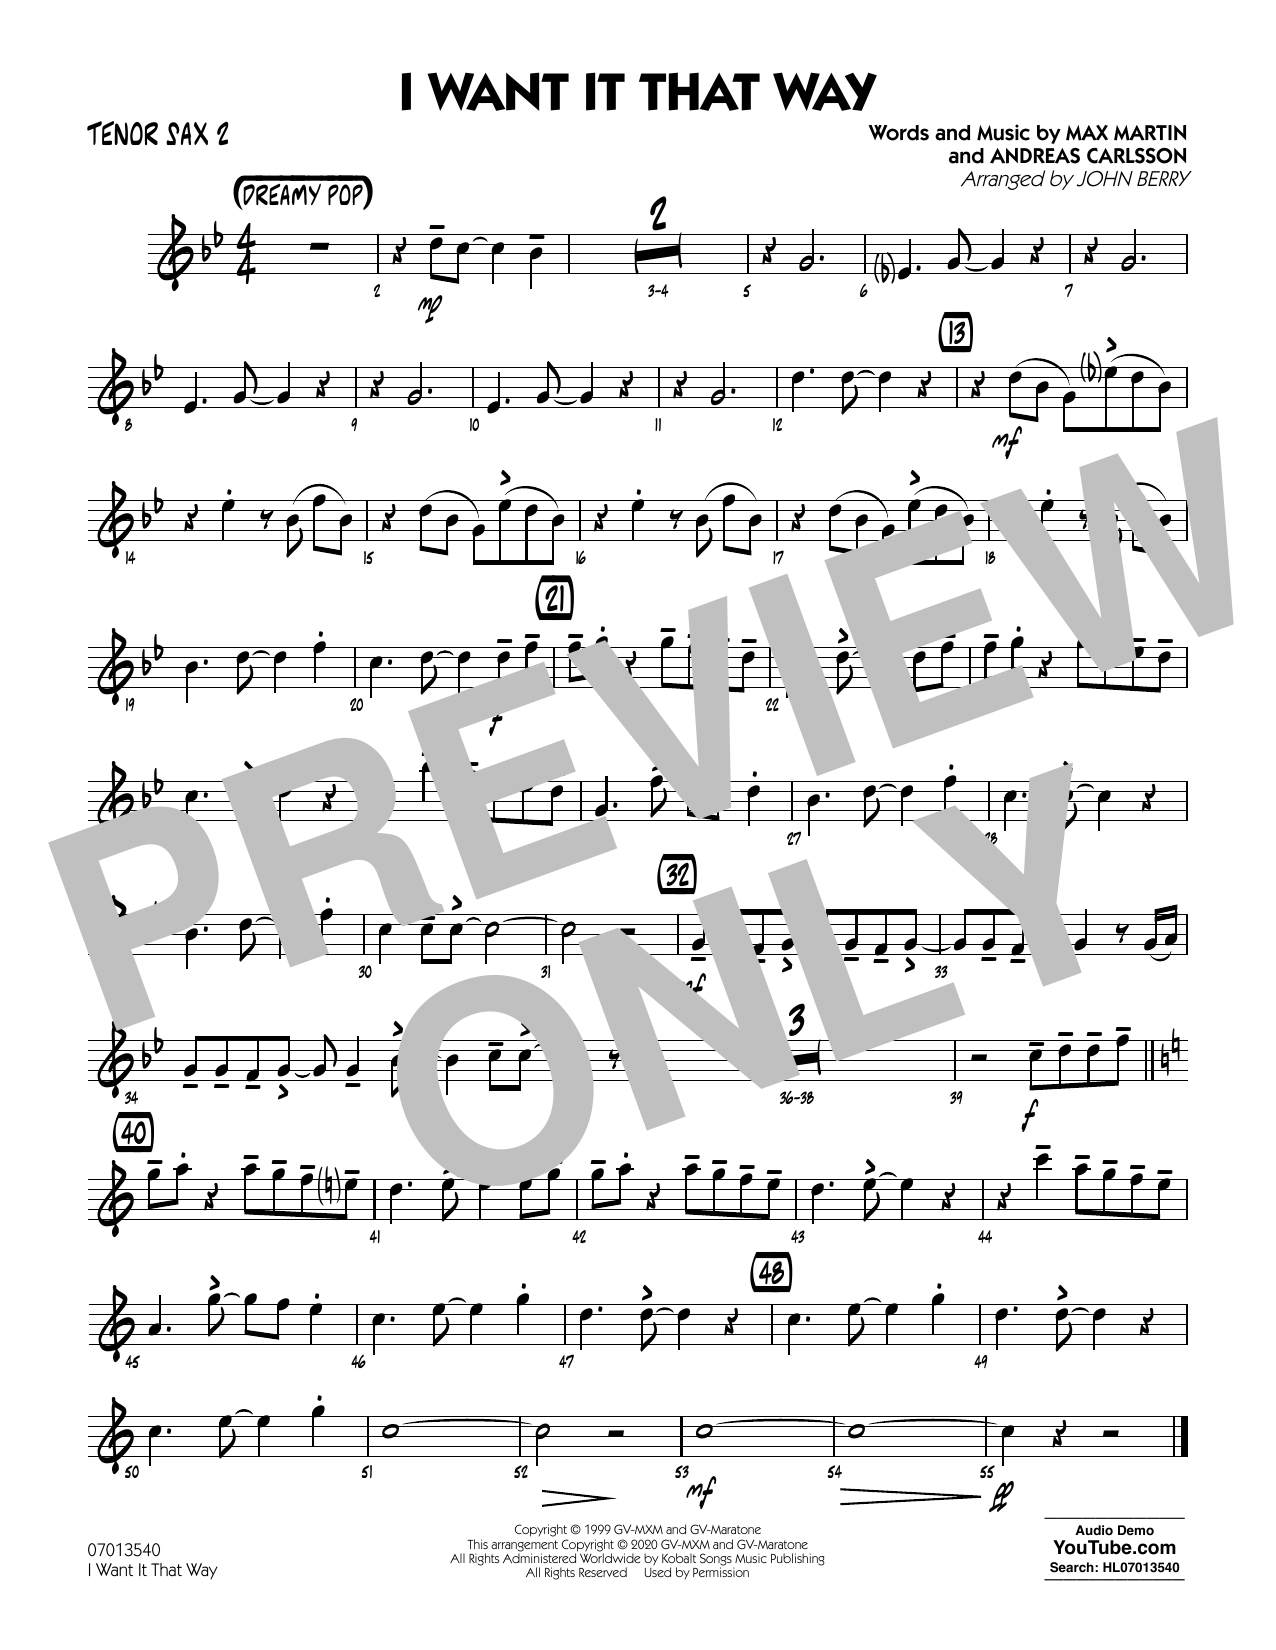 I Want It That Way (arr. John Berry) - Tenor Sax 2 Sheet Music